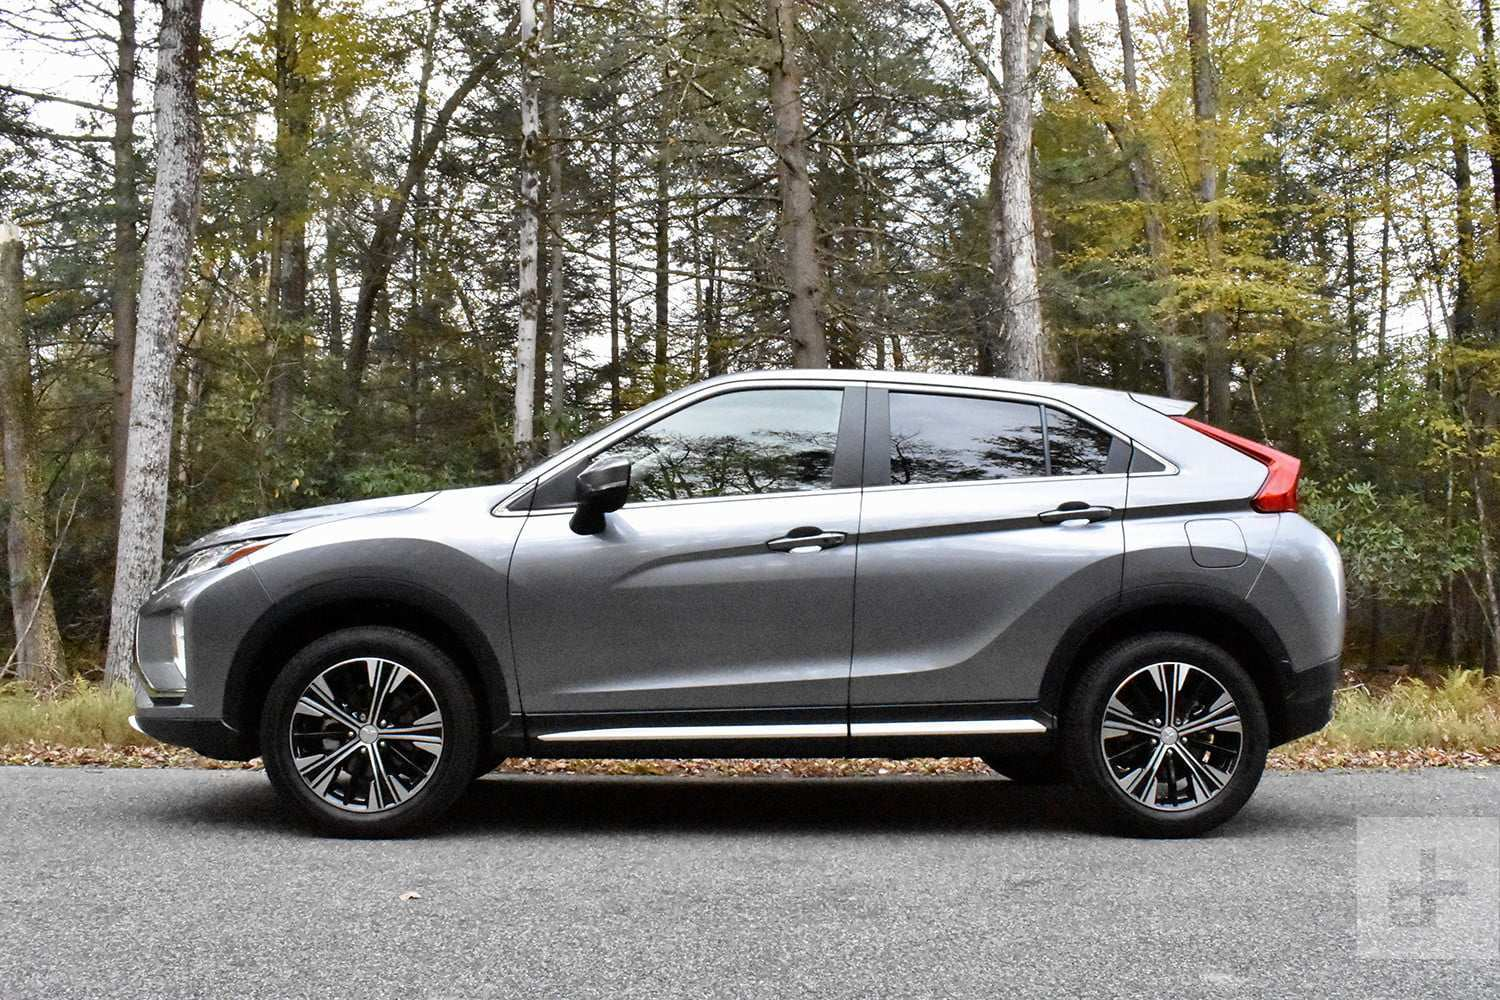 52 The Best Mitsubishi Eclipse Cross Hybrid 2020 Configurations